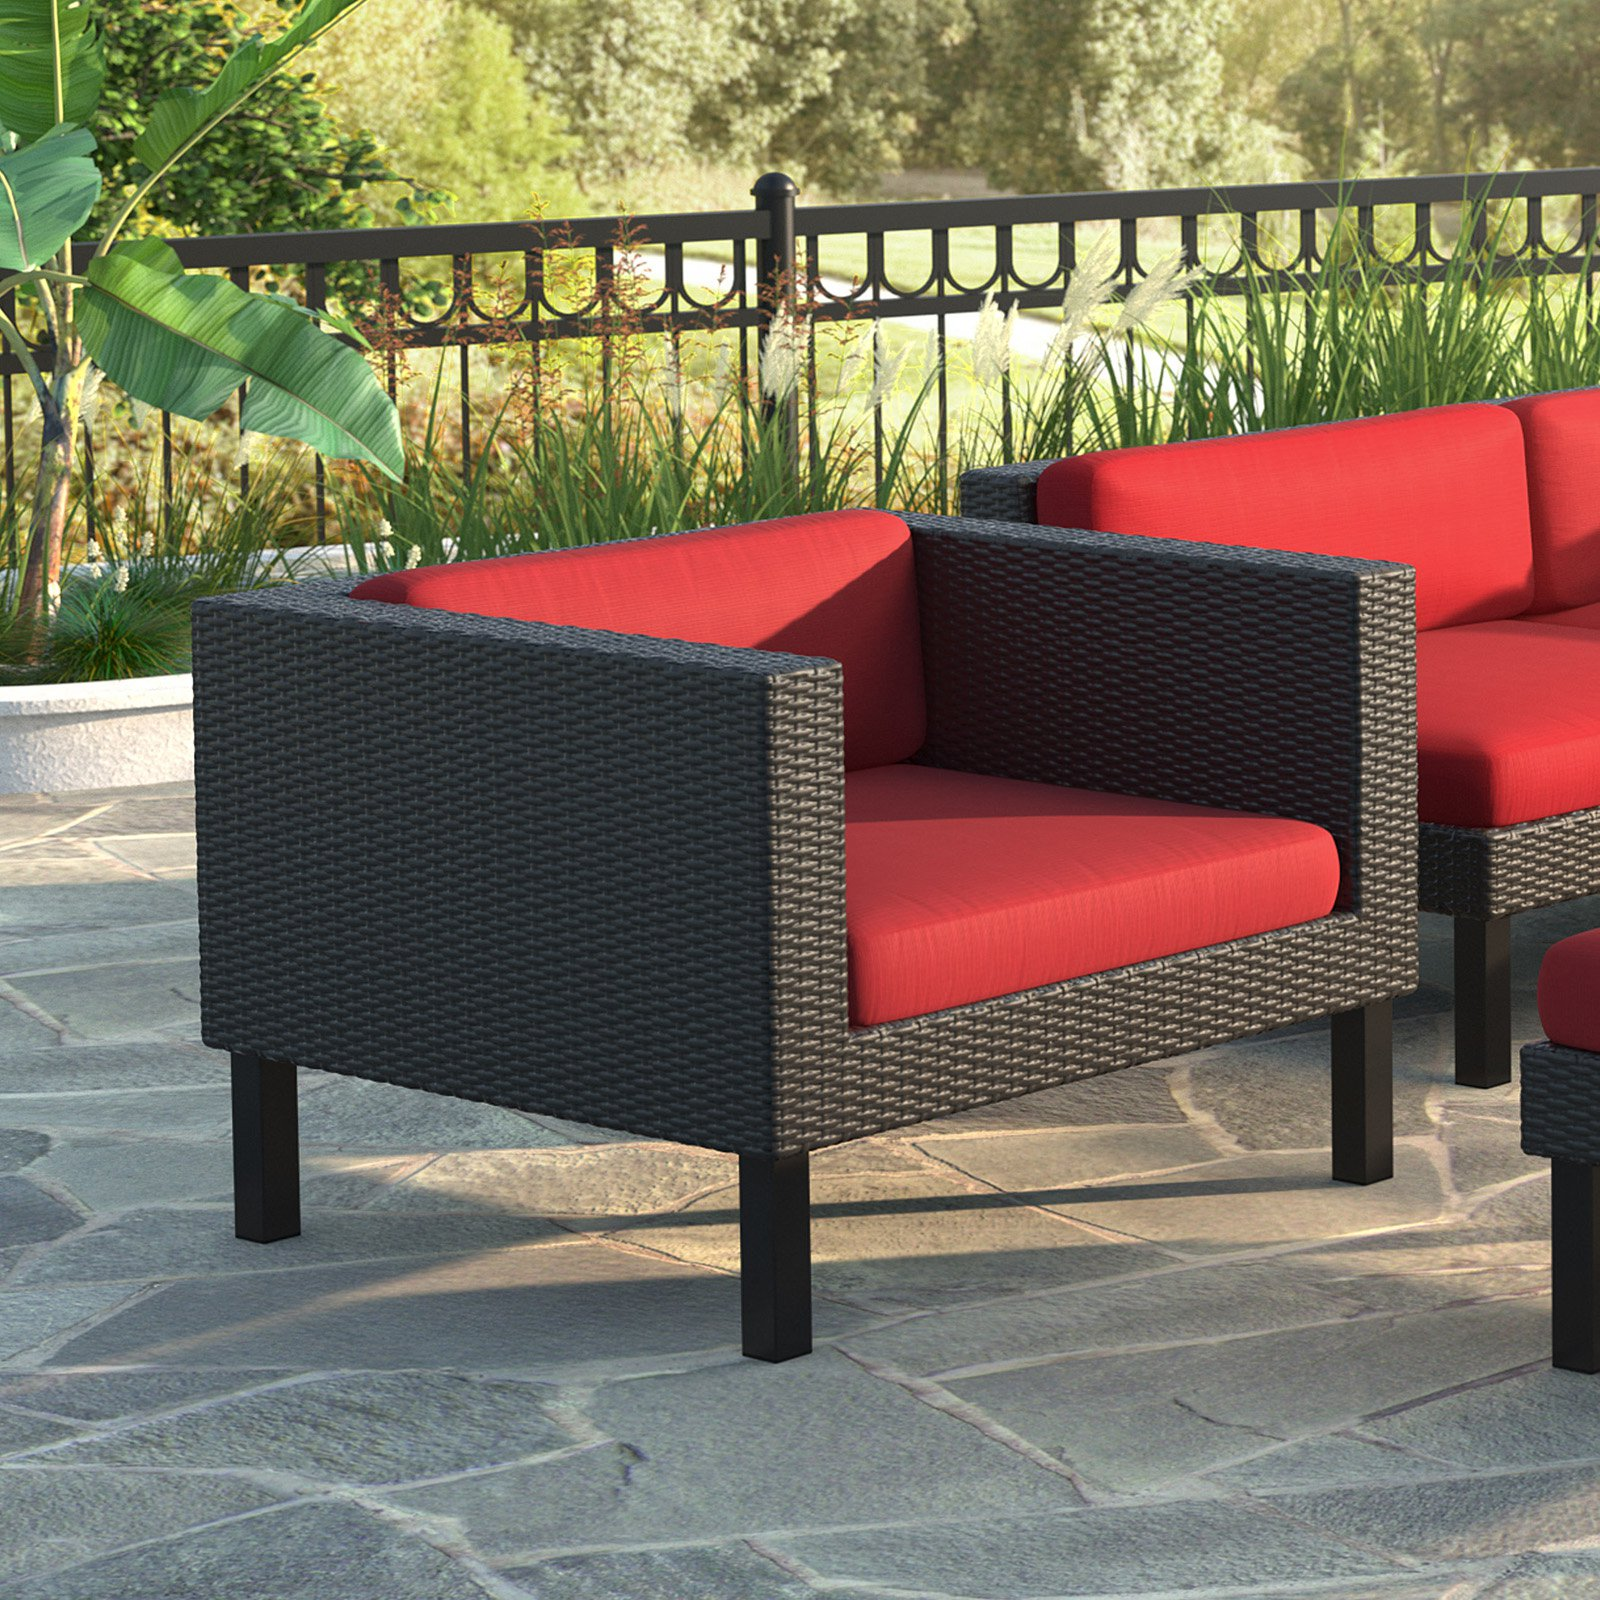 CorLiving Oakland Wicker Patio Lounge Chair by Sonax